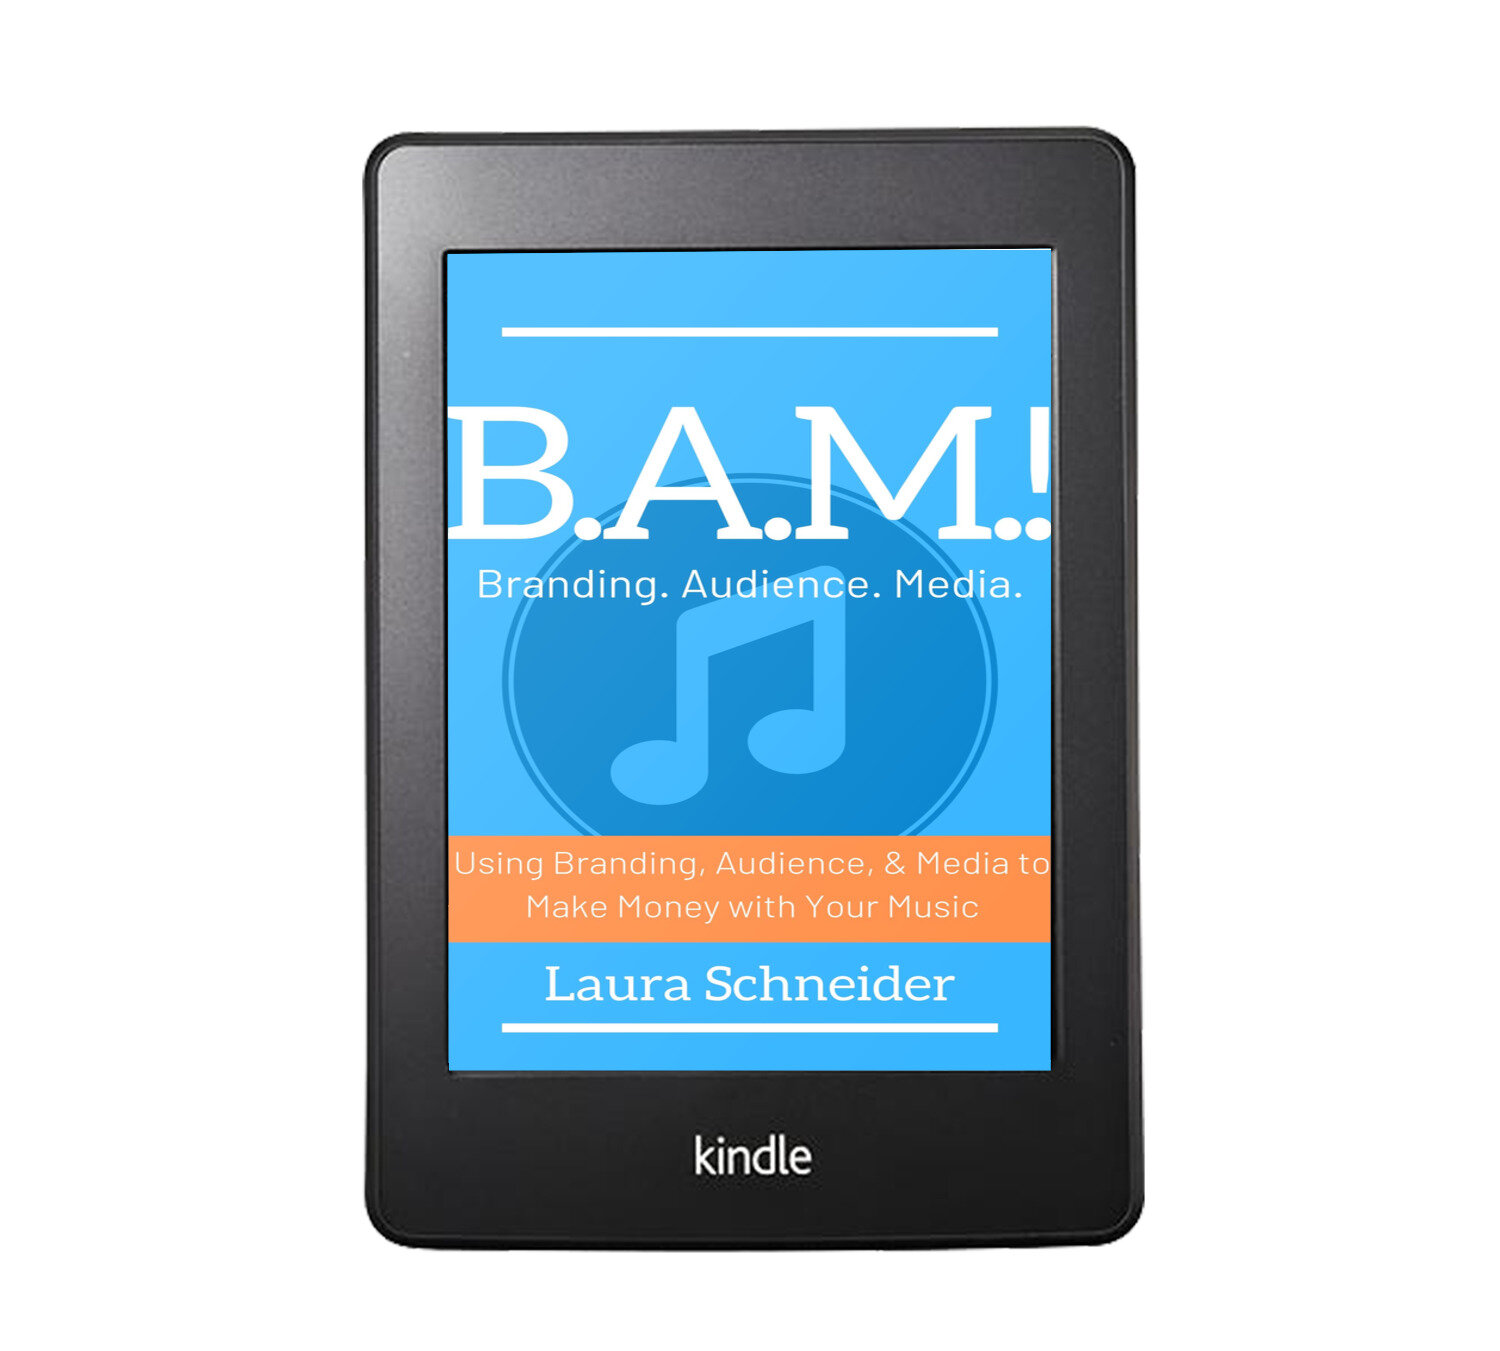 bam final book cover kindle.jpg